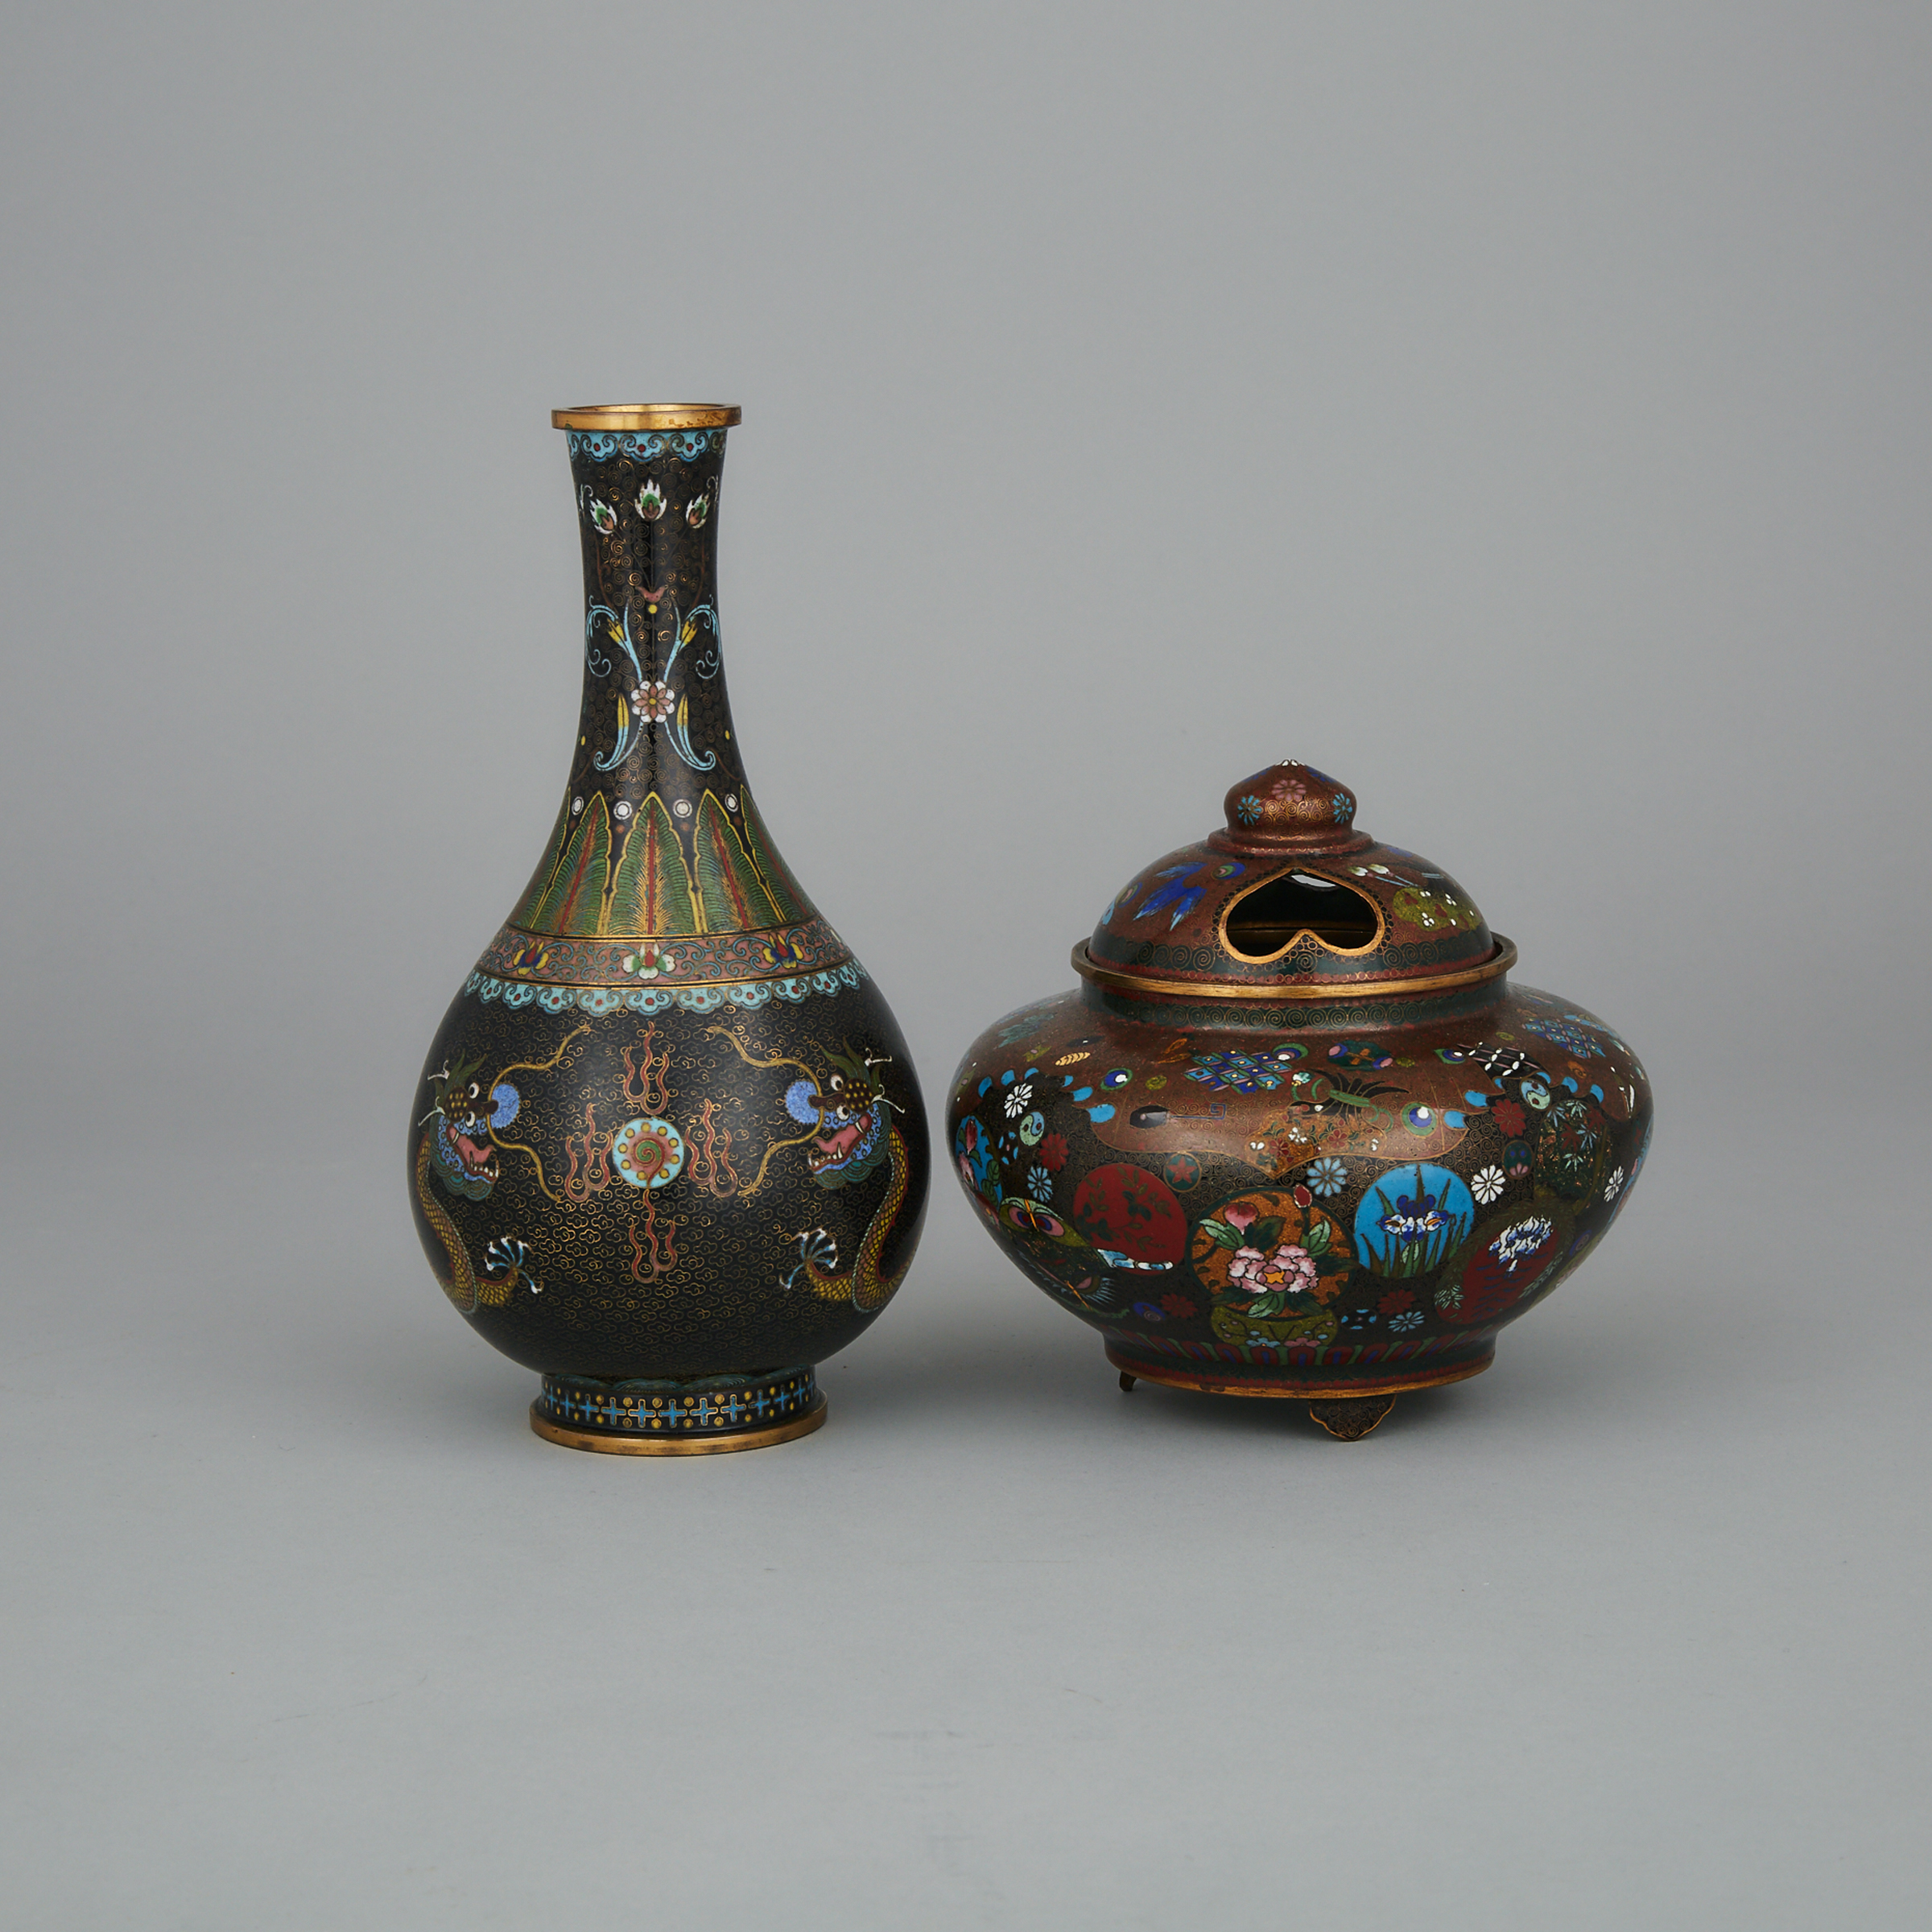 Two Cloisonné Vessels